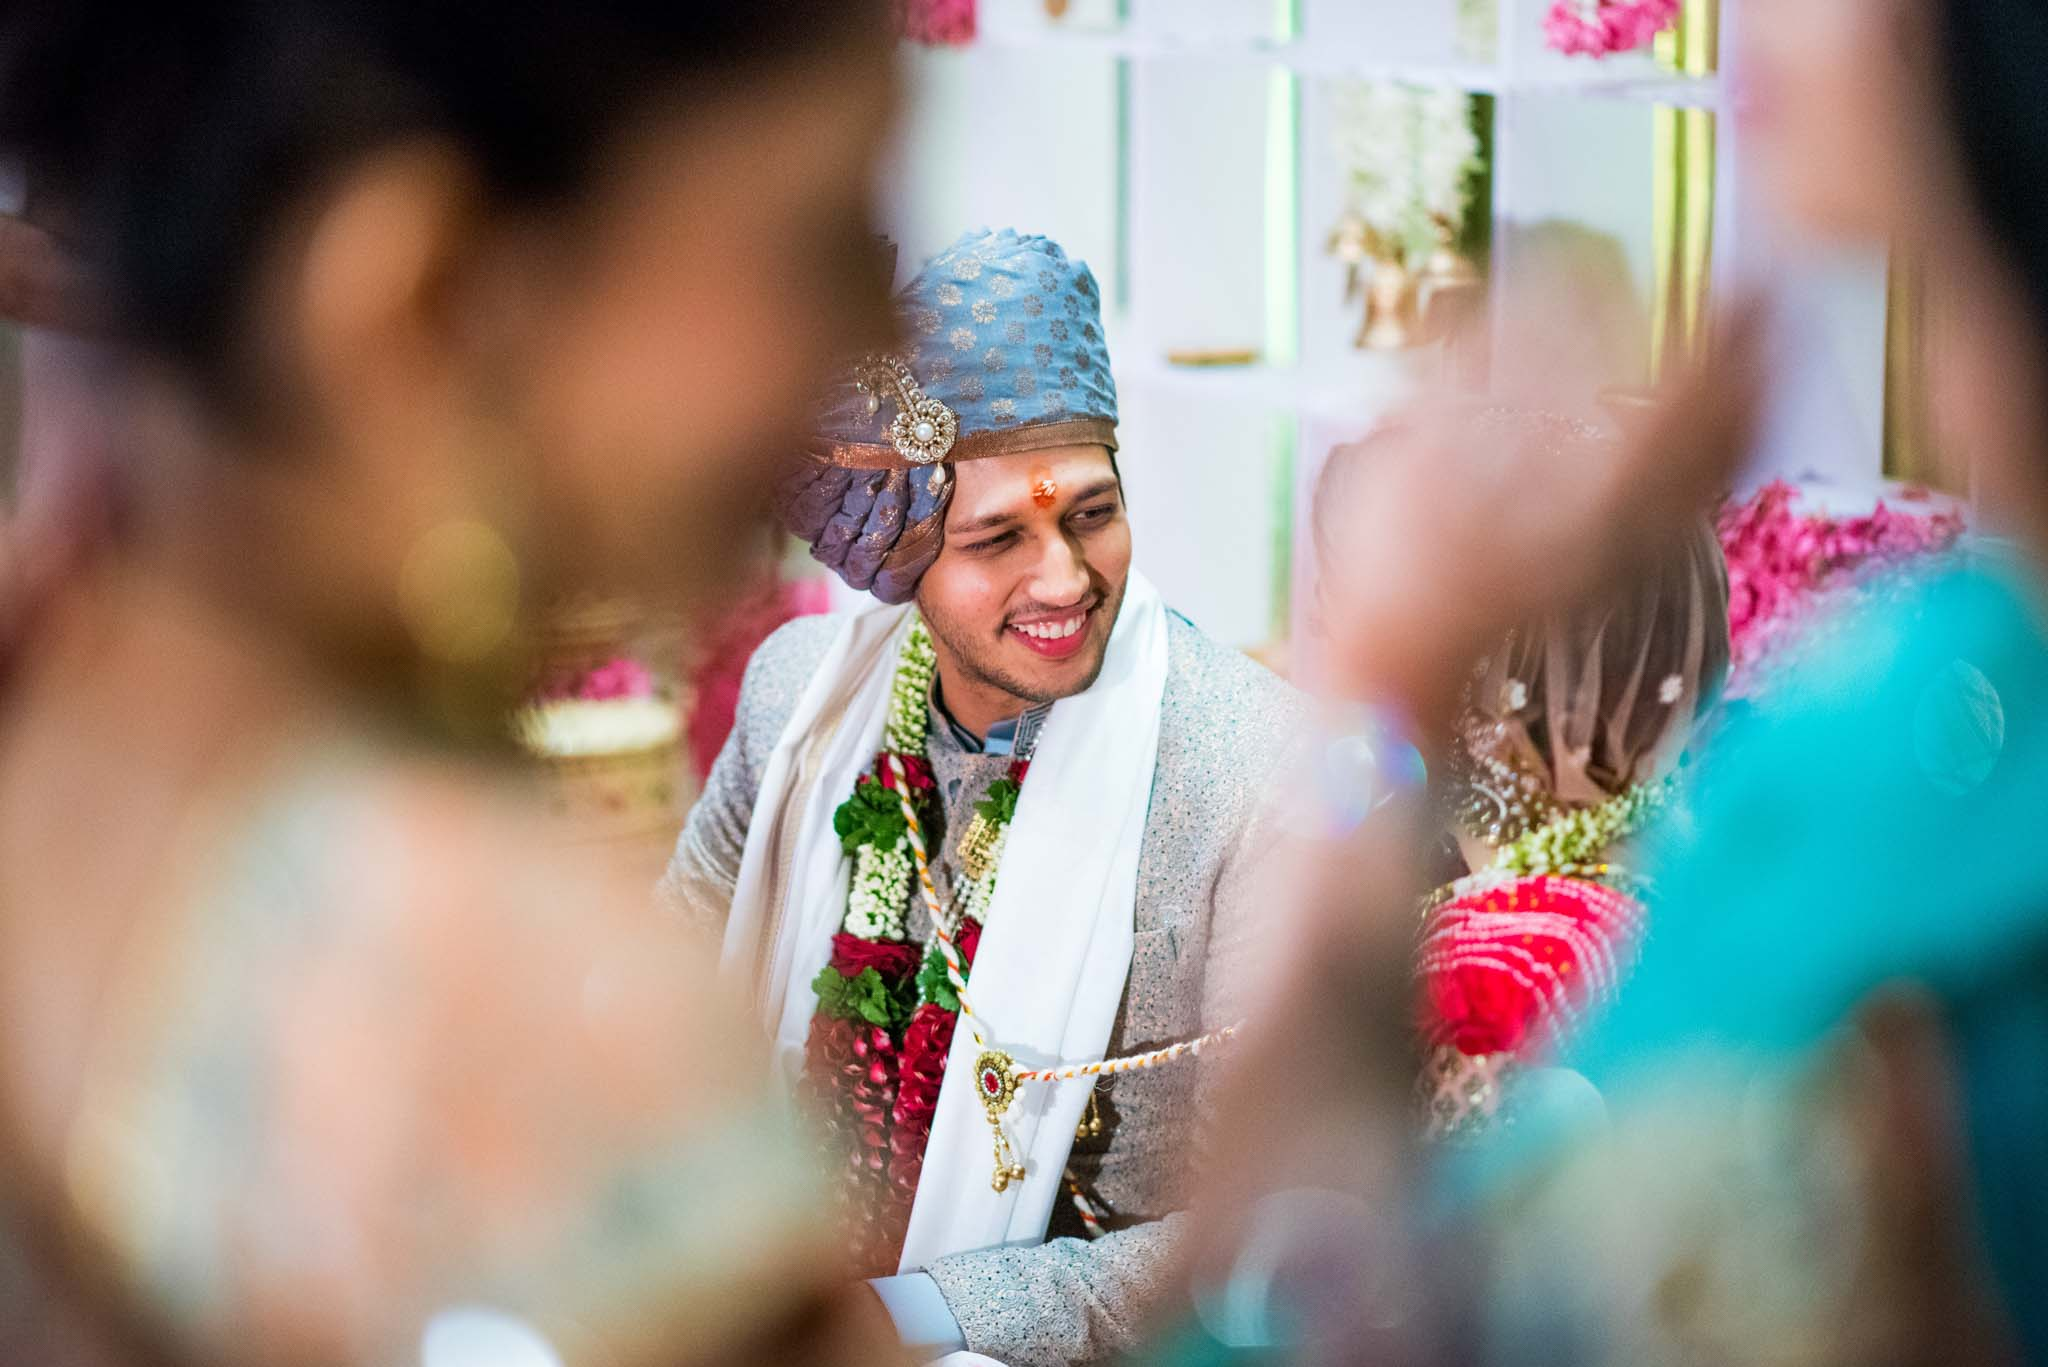 StRegis-Palladium-Mumbai-Candid-Wedding-Photography-55